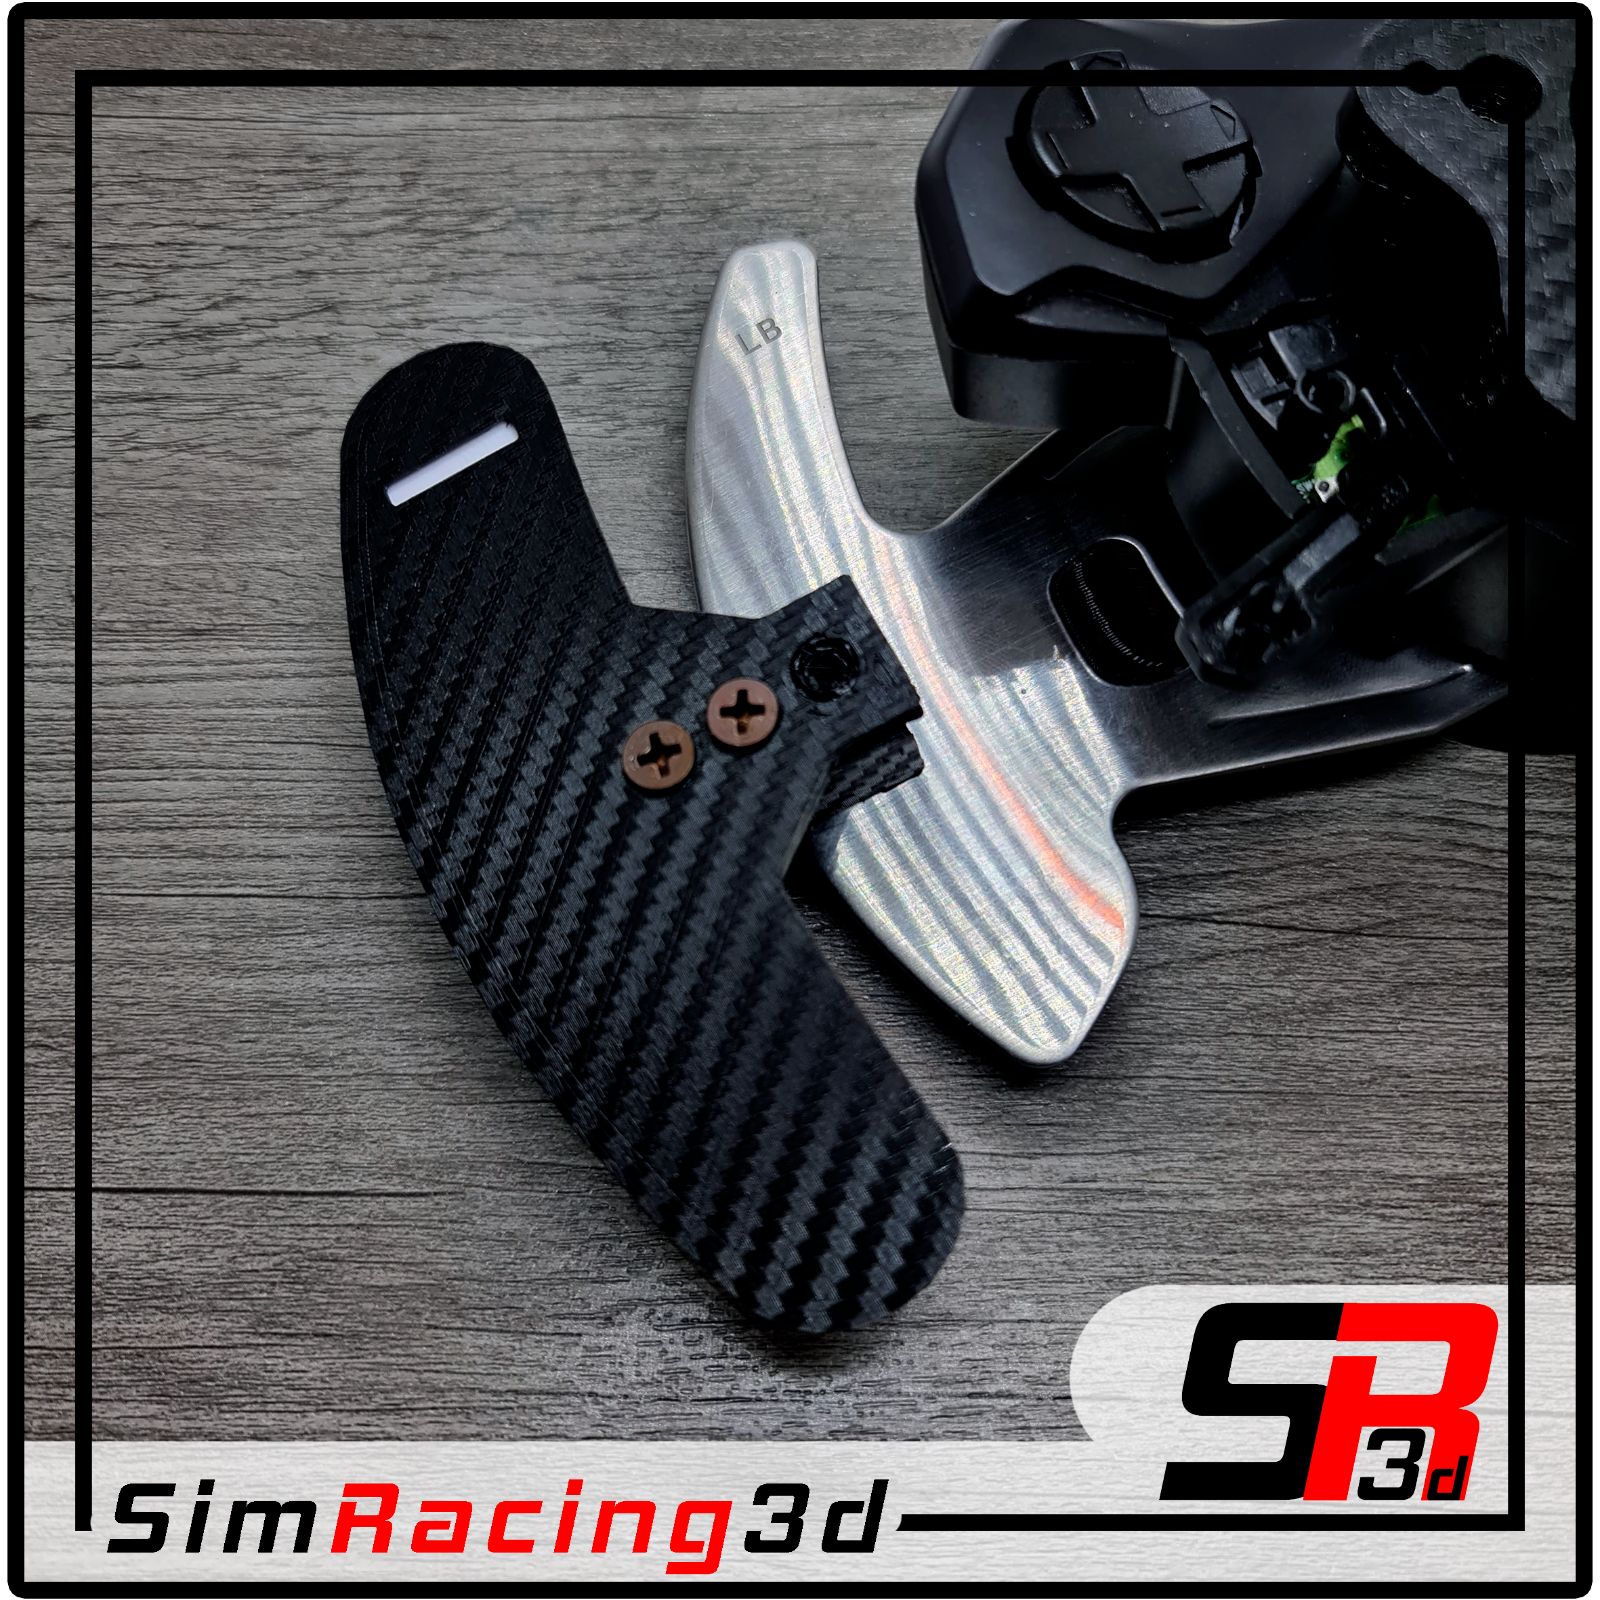 Logitech 923 G29 G27 G25 G920 Paddle Shifter Mod for Flat Dish Rims Carbon look